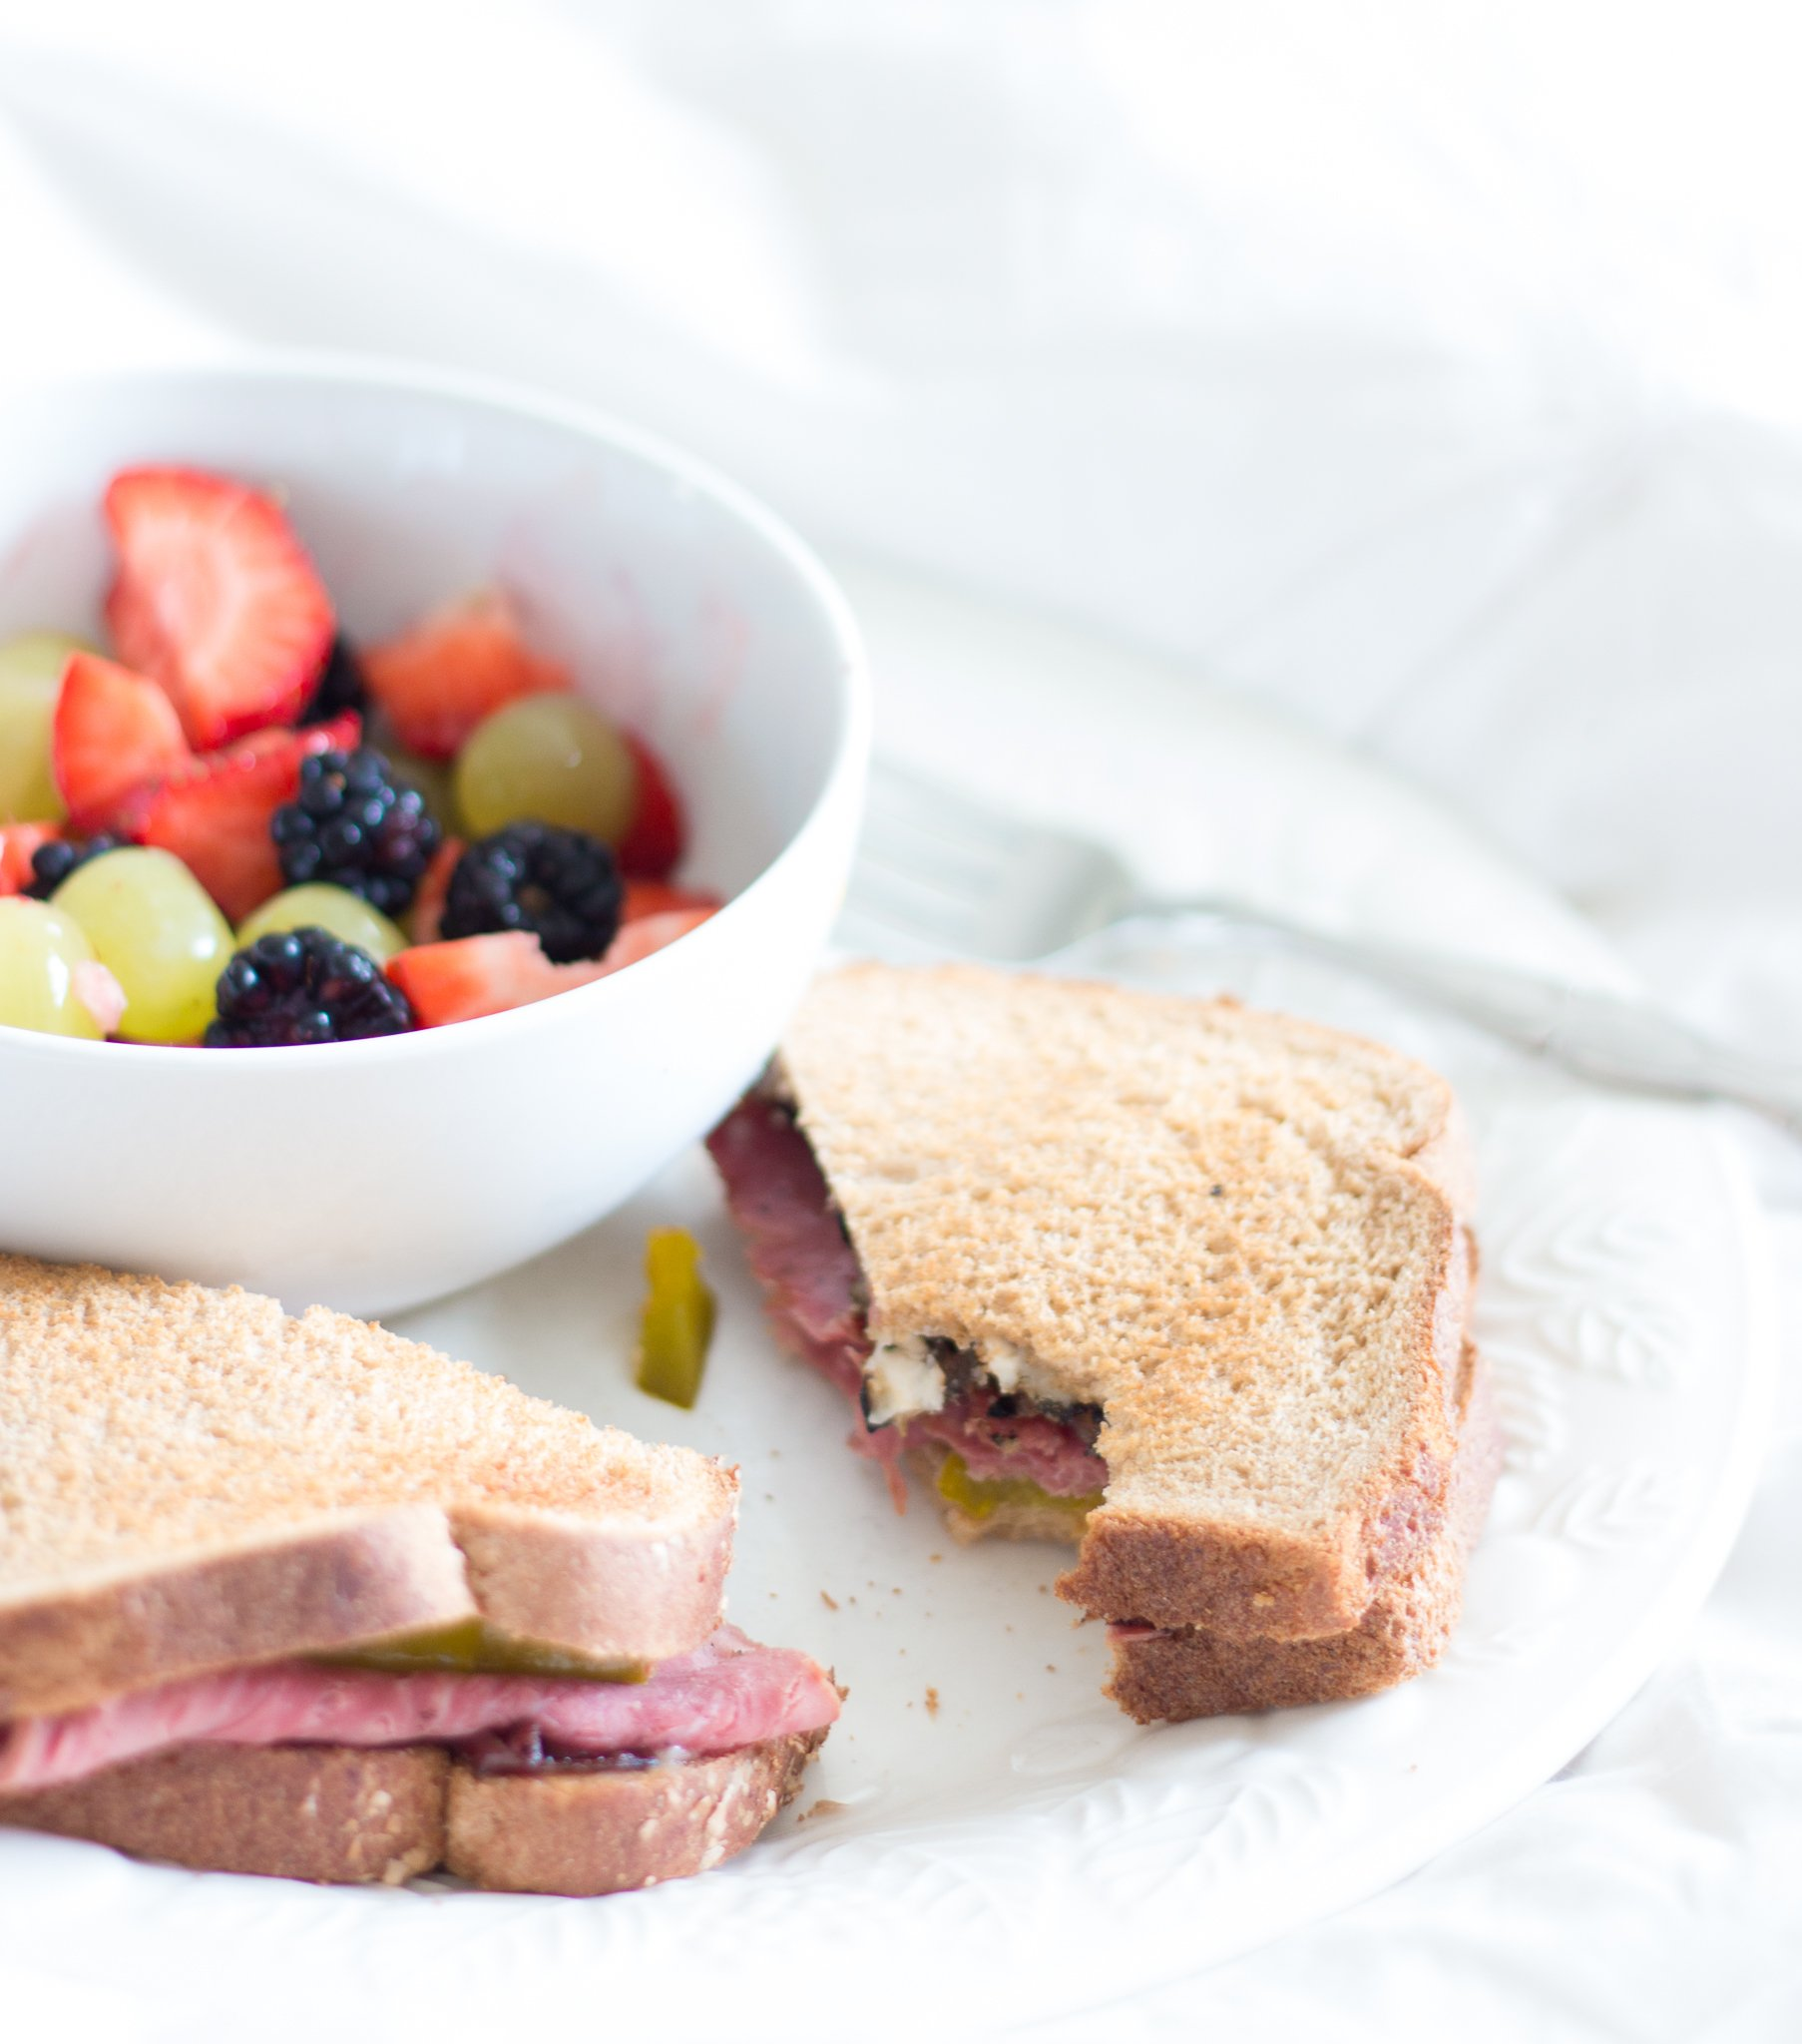 Roast Beef and Brie Sandwich - A Thoughtful Place